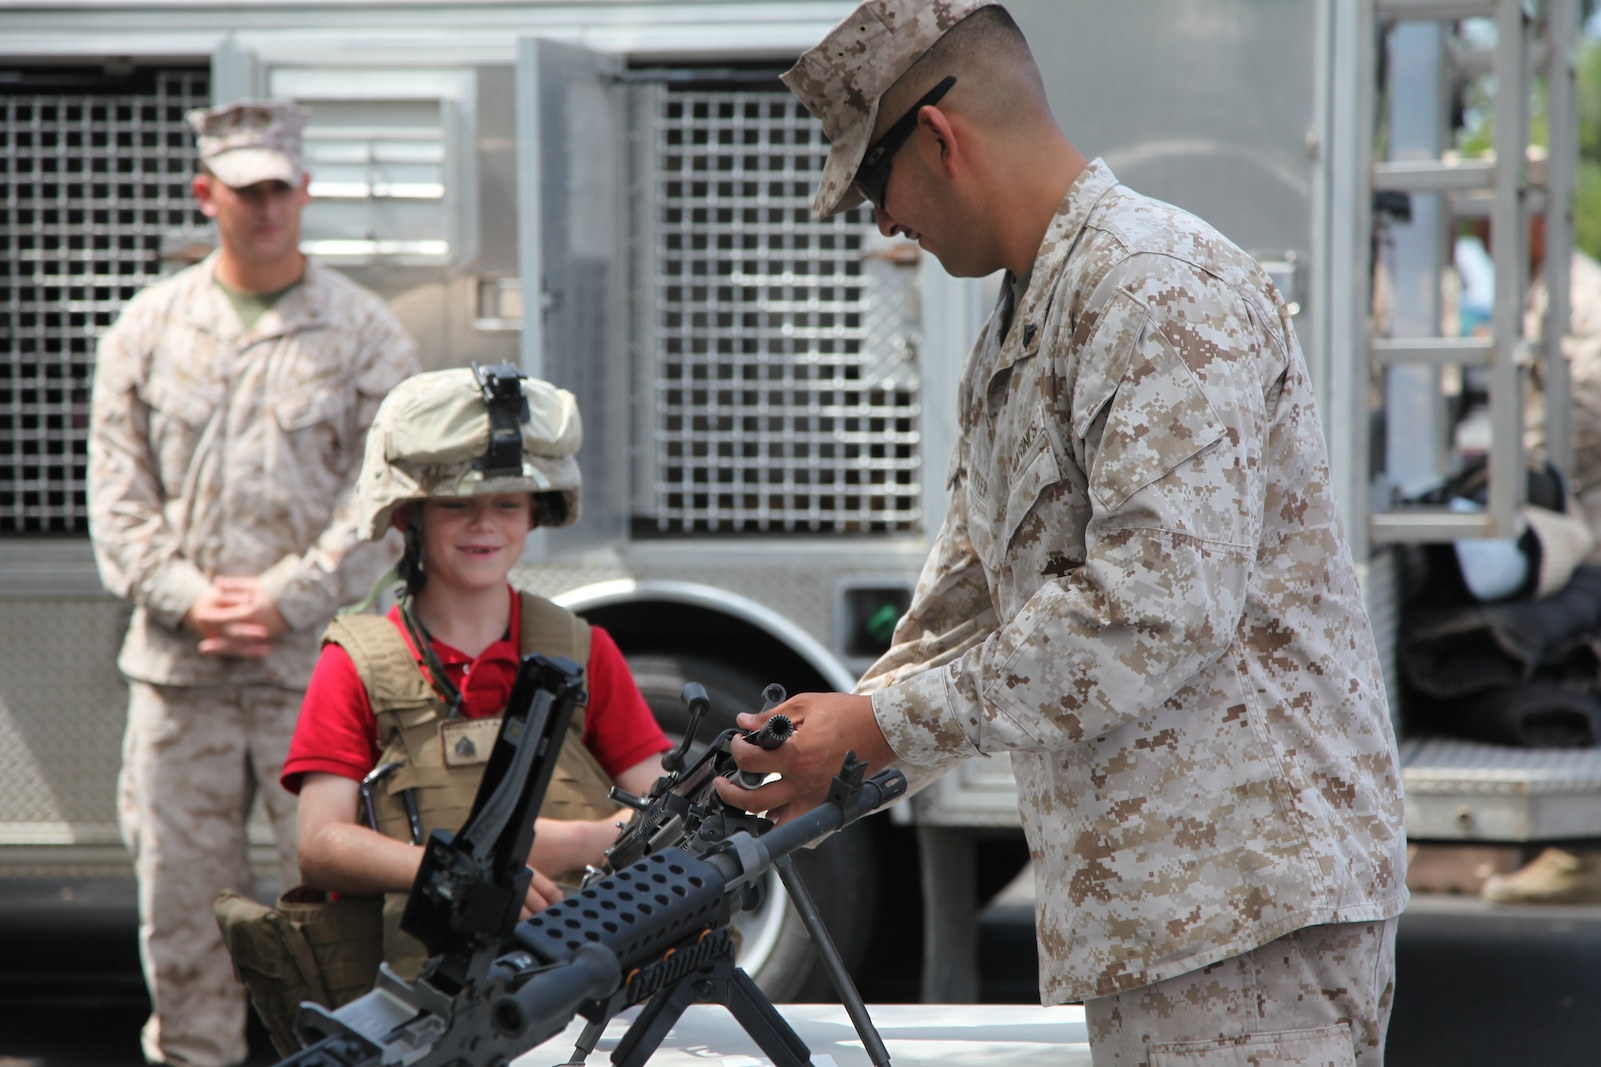 Marines with Combat Logistics Battalion 13 teamed with policemen, sheriffs, fire fighters and emergency medical technicians to promote Patriot Day 2012, a 9/11 remembrance event, held at Faith Lutheran Church, Sept. 9.